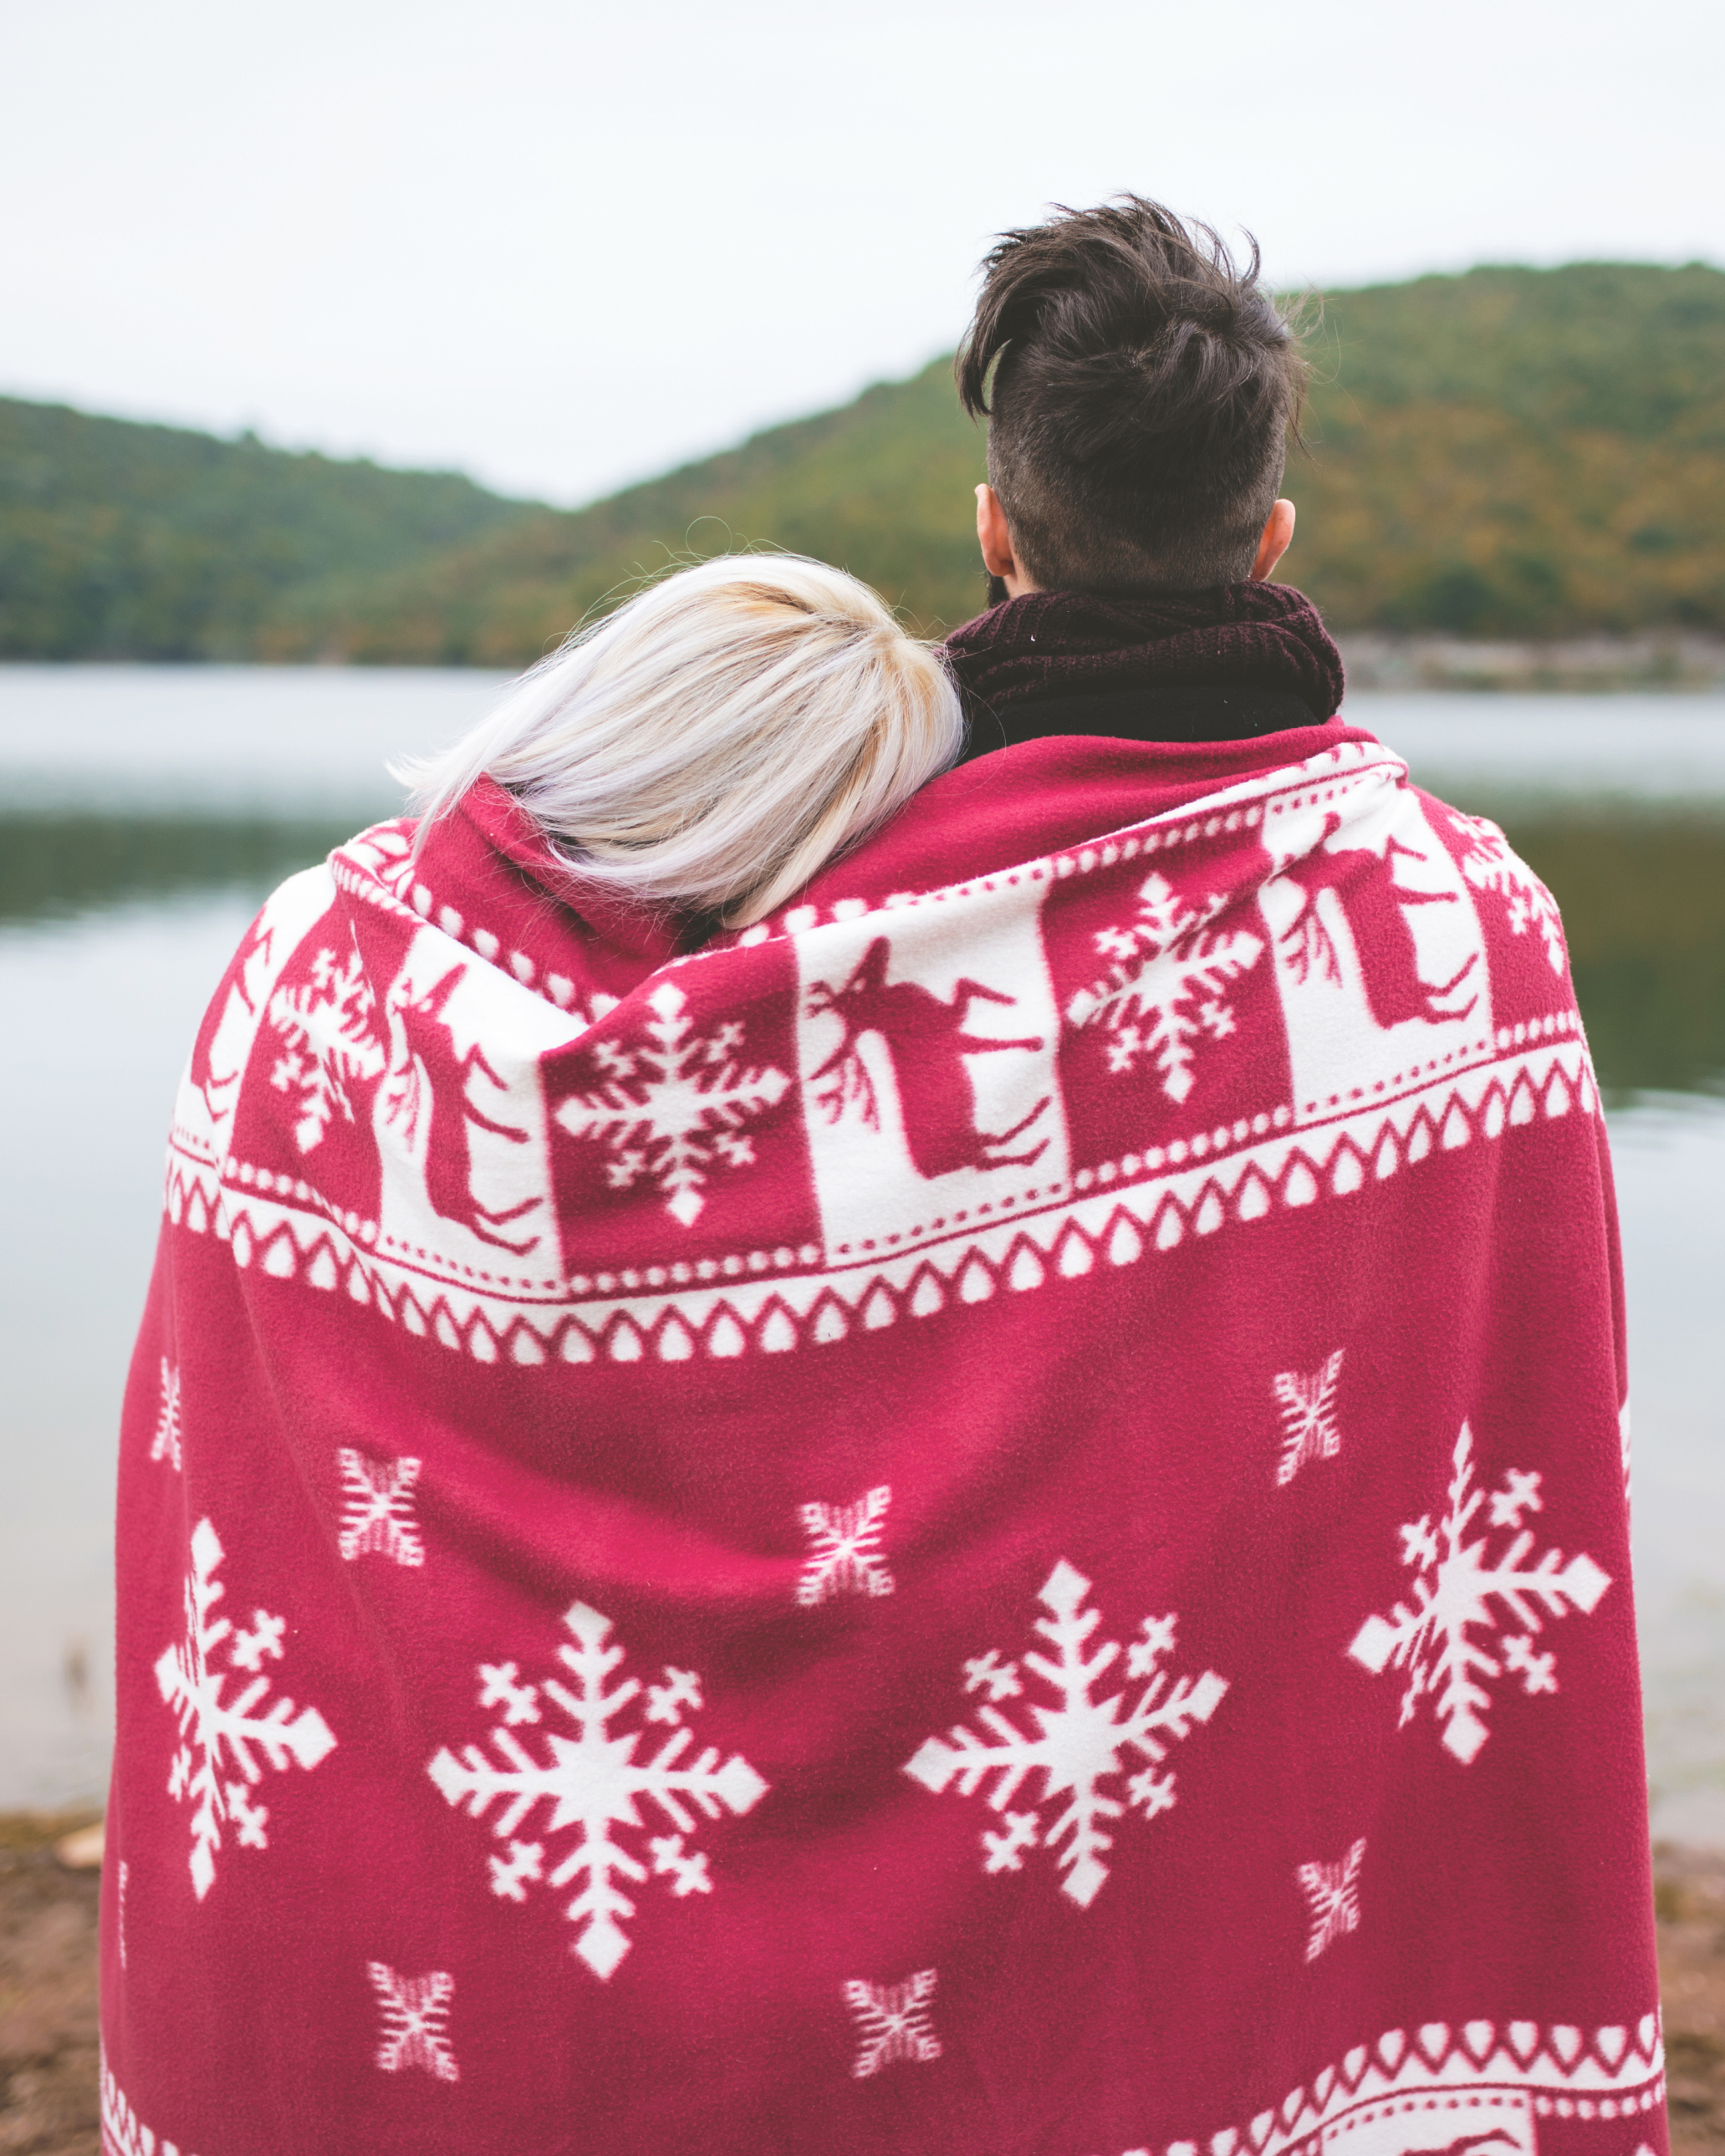 How to Tell Your Boyfriend You *Don't* Want a Holiday Proposal